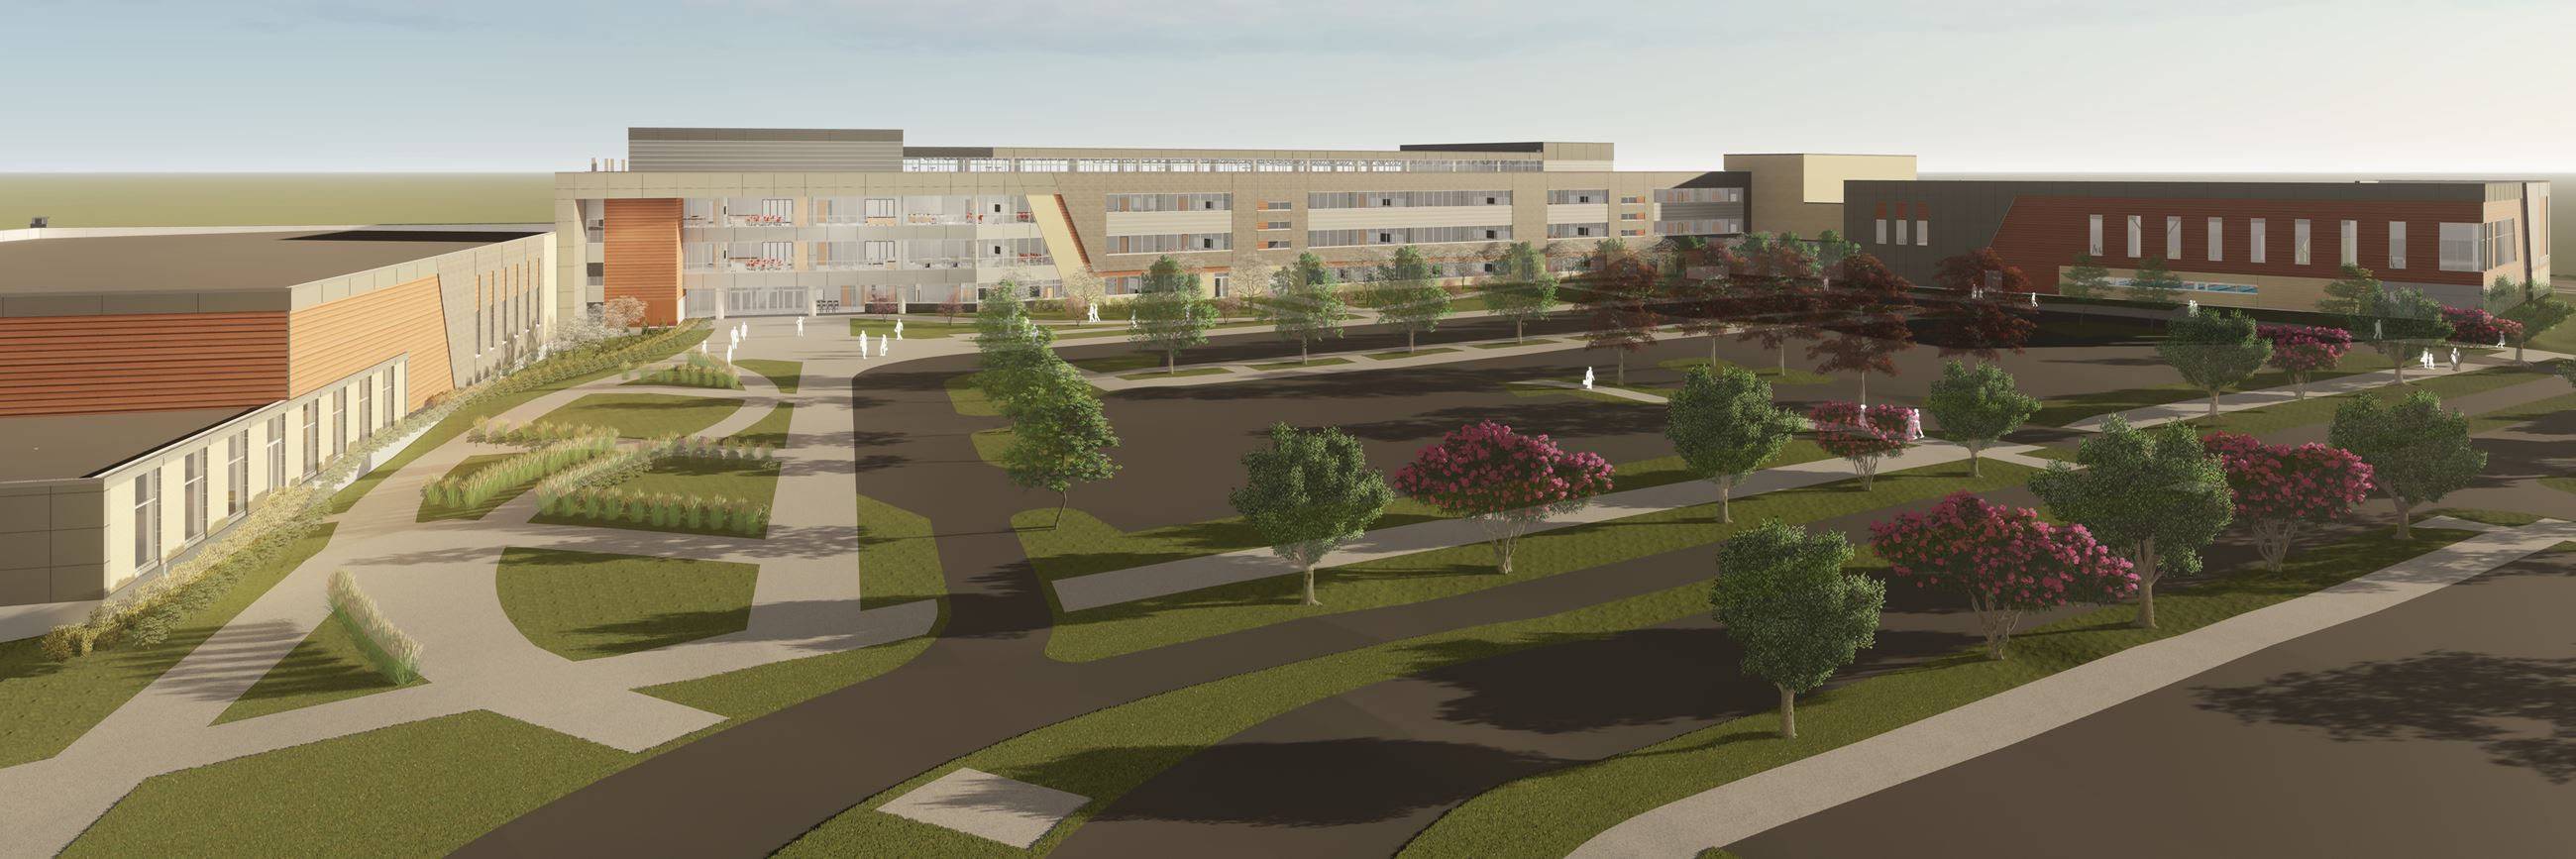 Rendering of new Verona Area High School opening in Fall 2020.